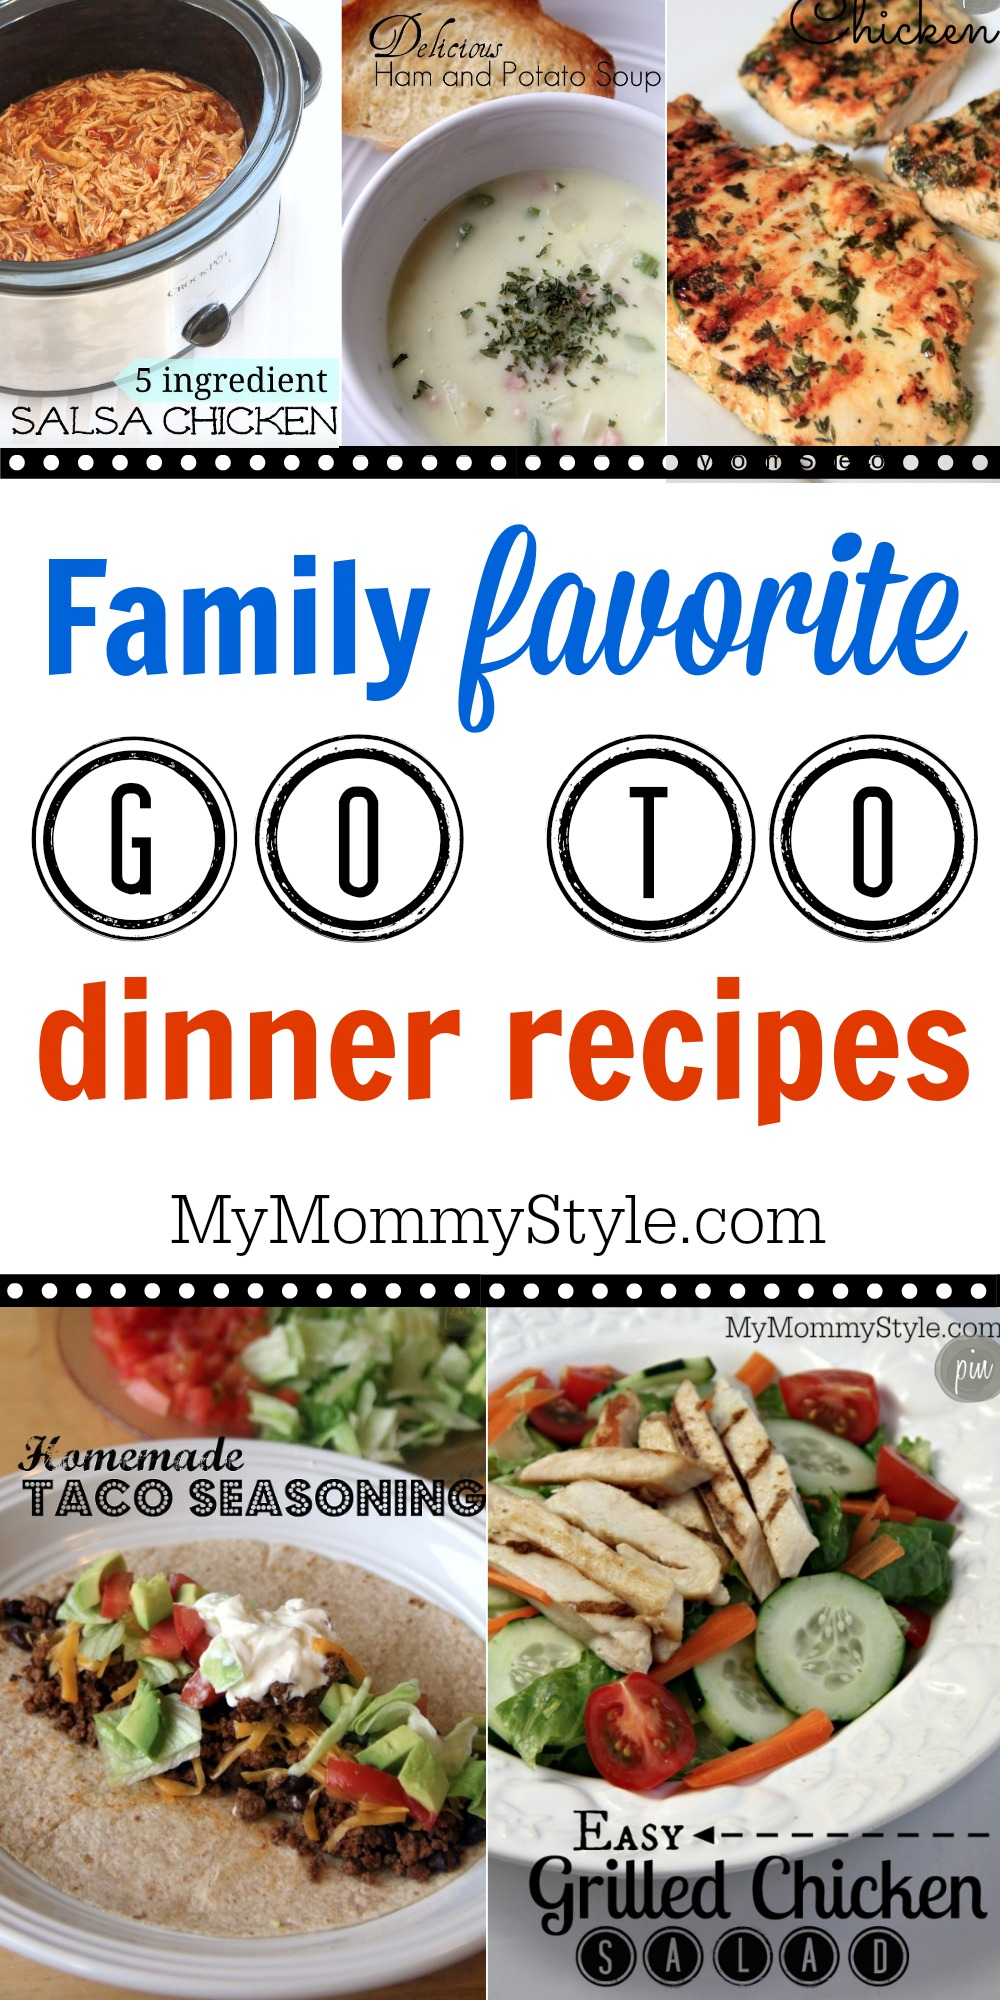 Family favorite go to dinner recipes my mommy style forumfinder Images